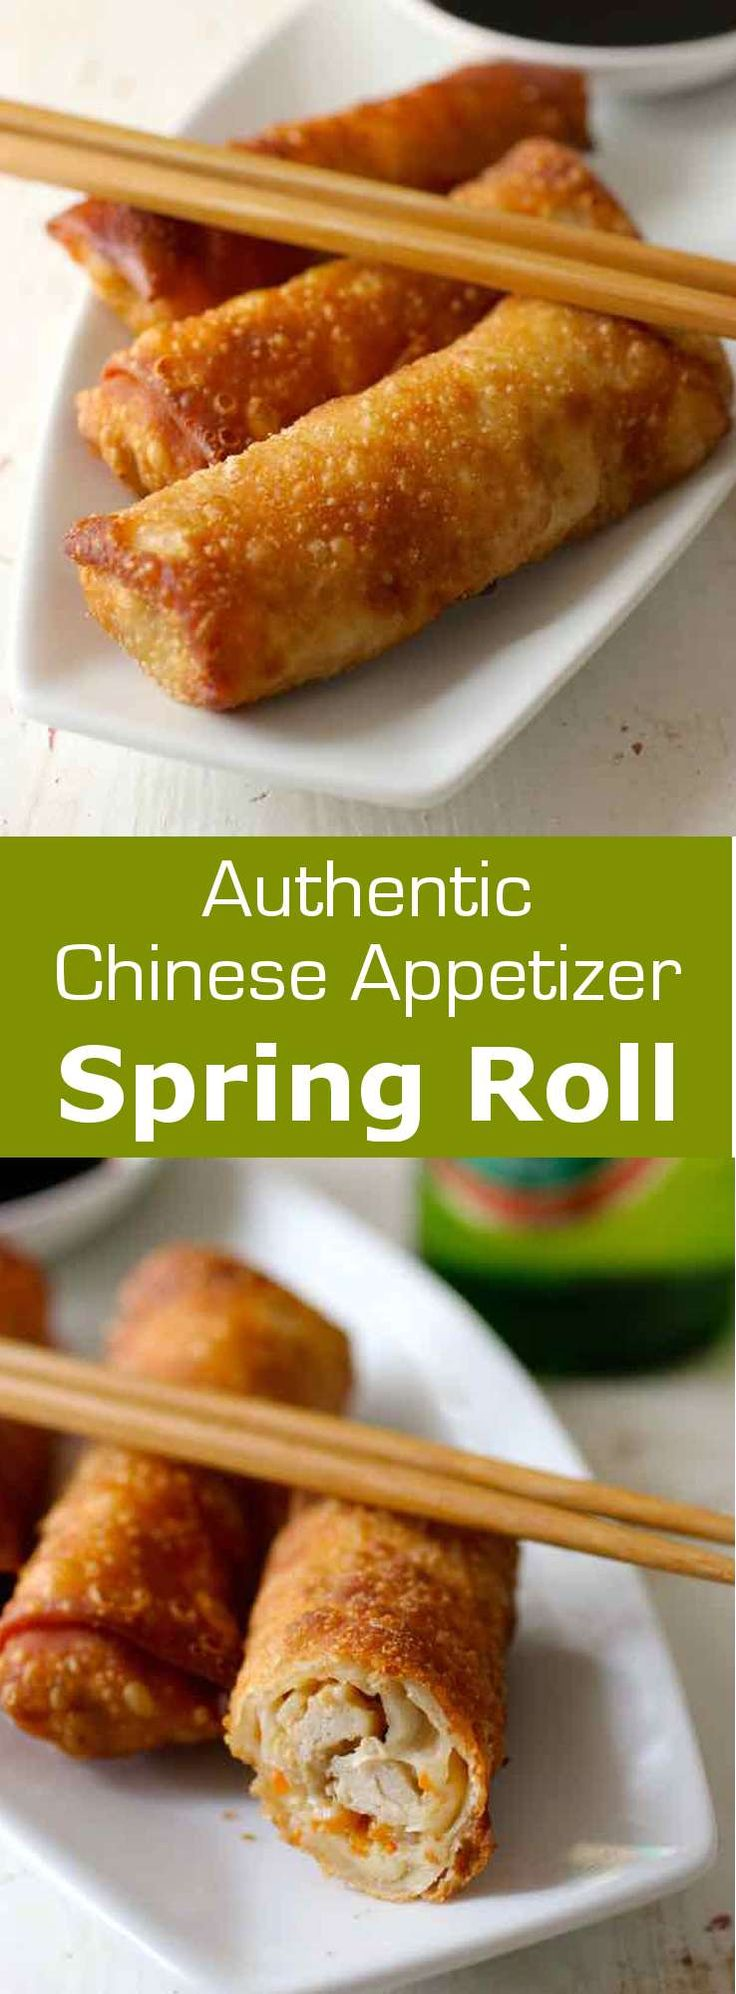 Spring rolls are traditional Southeast Asian appetizers that can be served non-fried or fried. The fried version is also known as egg rolls in the US. #China #Chinese #ChineseCuisine #ChineseRecipe #ChineseFood #AsianCuisine #AsianRecipe #ChineseAppetizer #Appetizer #WorldCuisine #196flavors